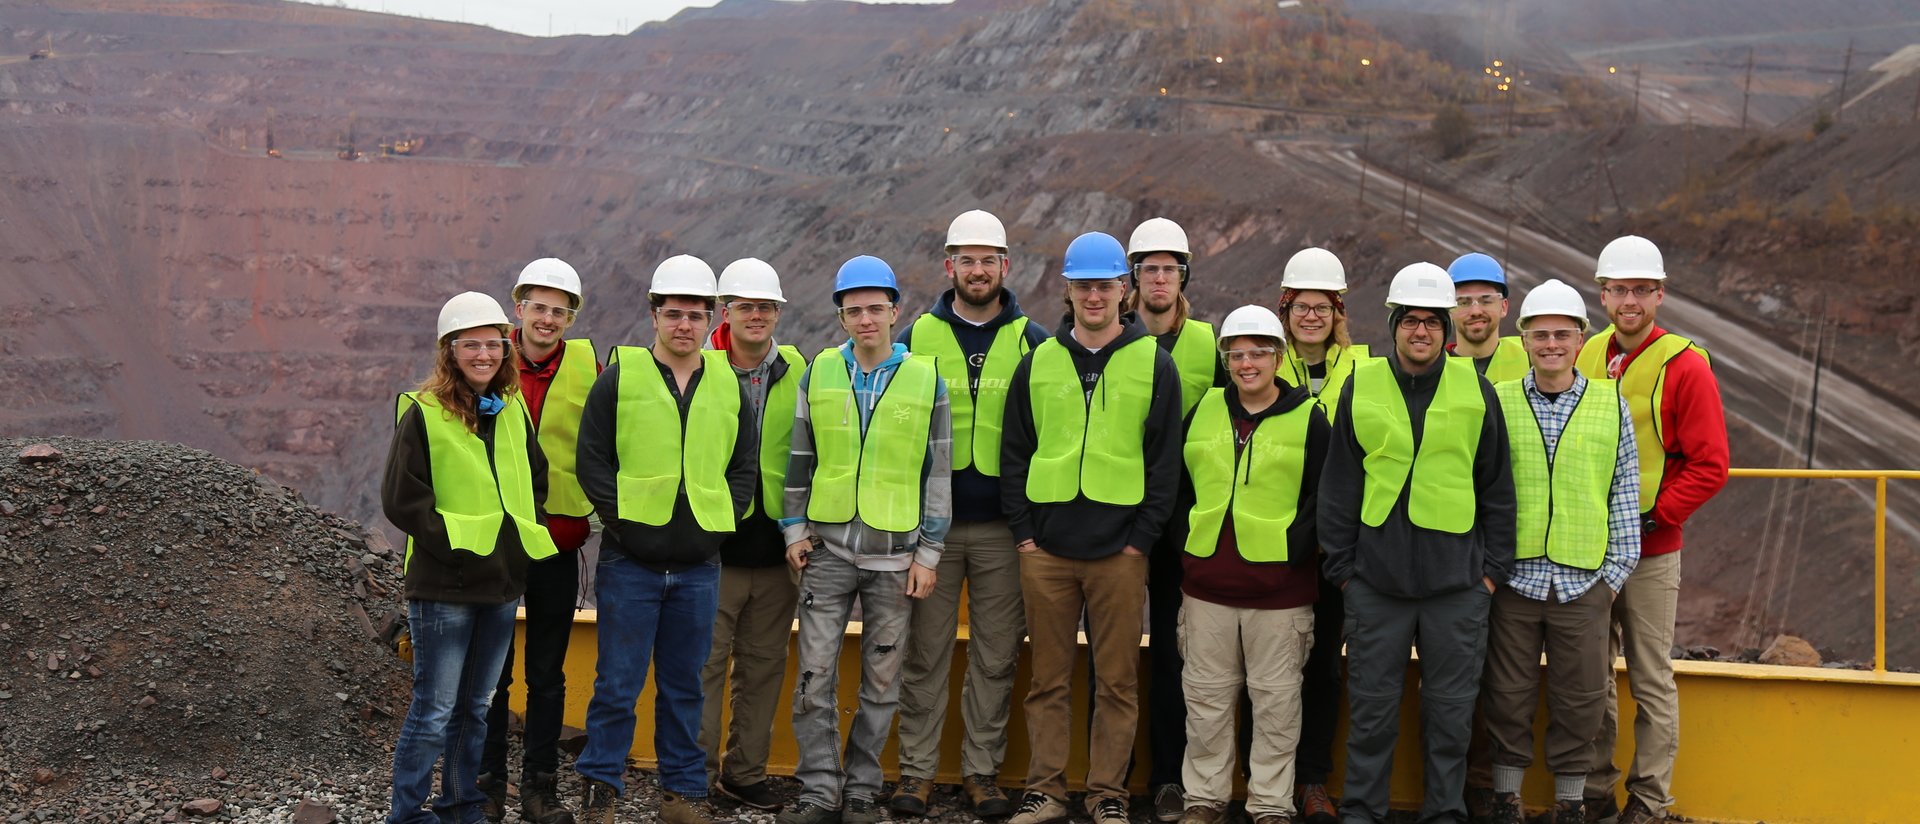 Geology student group shot at mine site